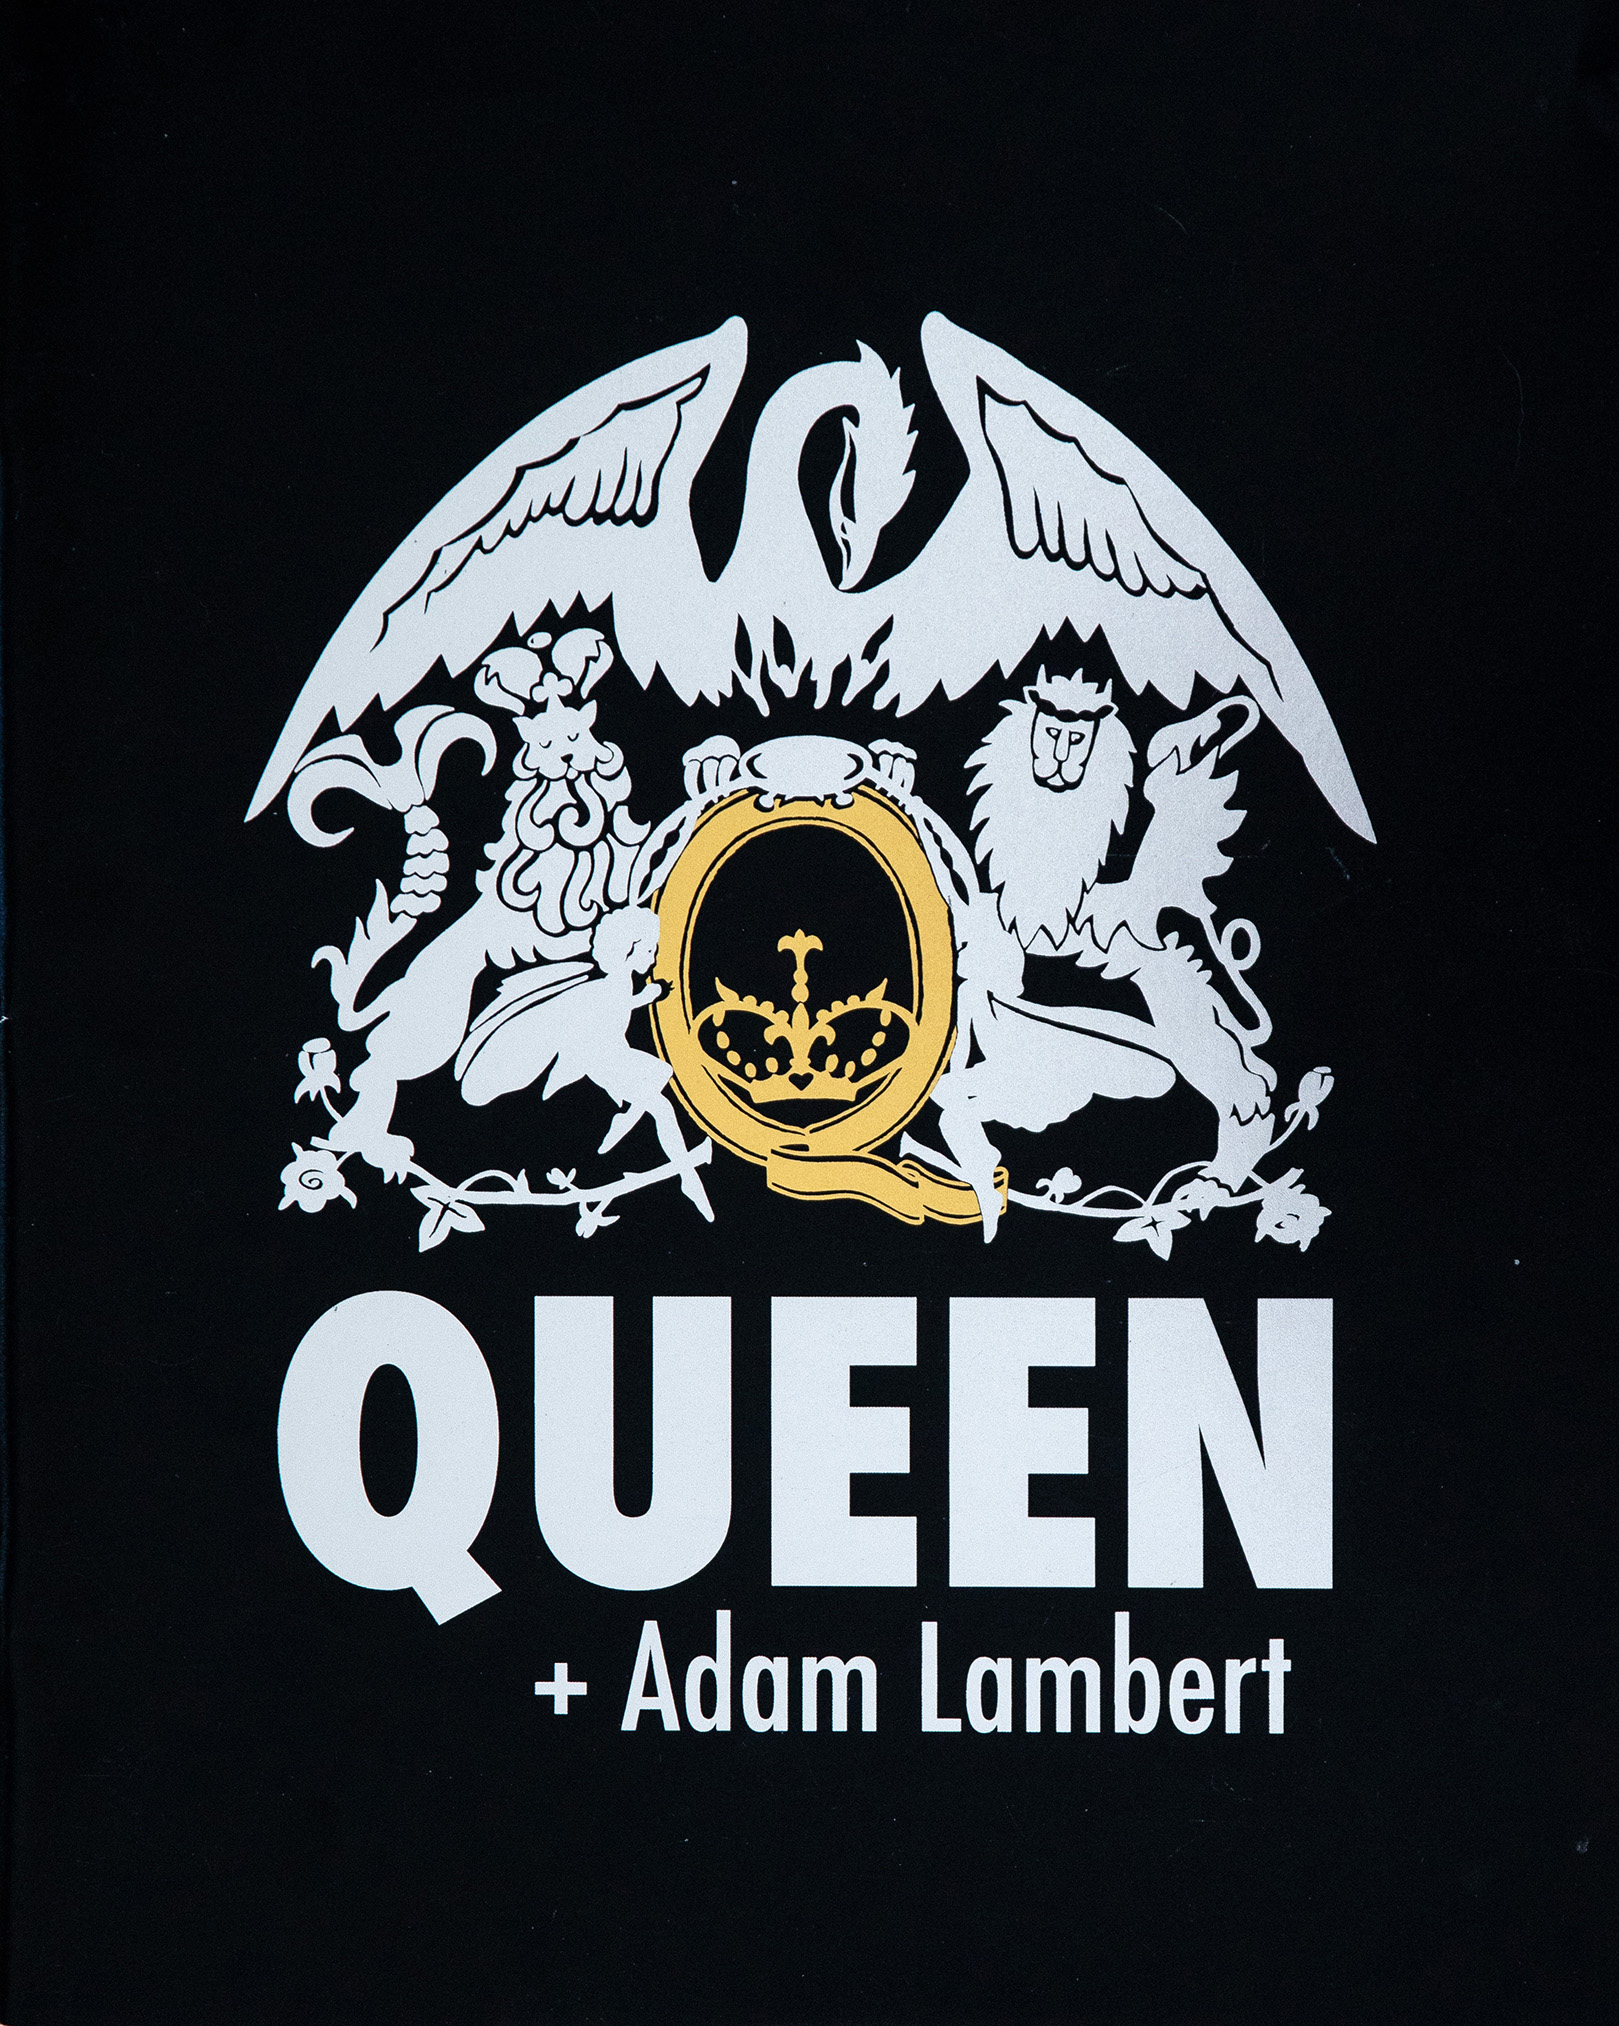 Queen + Adam Lambert - 2014 tour - glossy